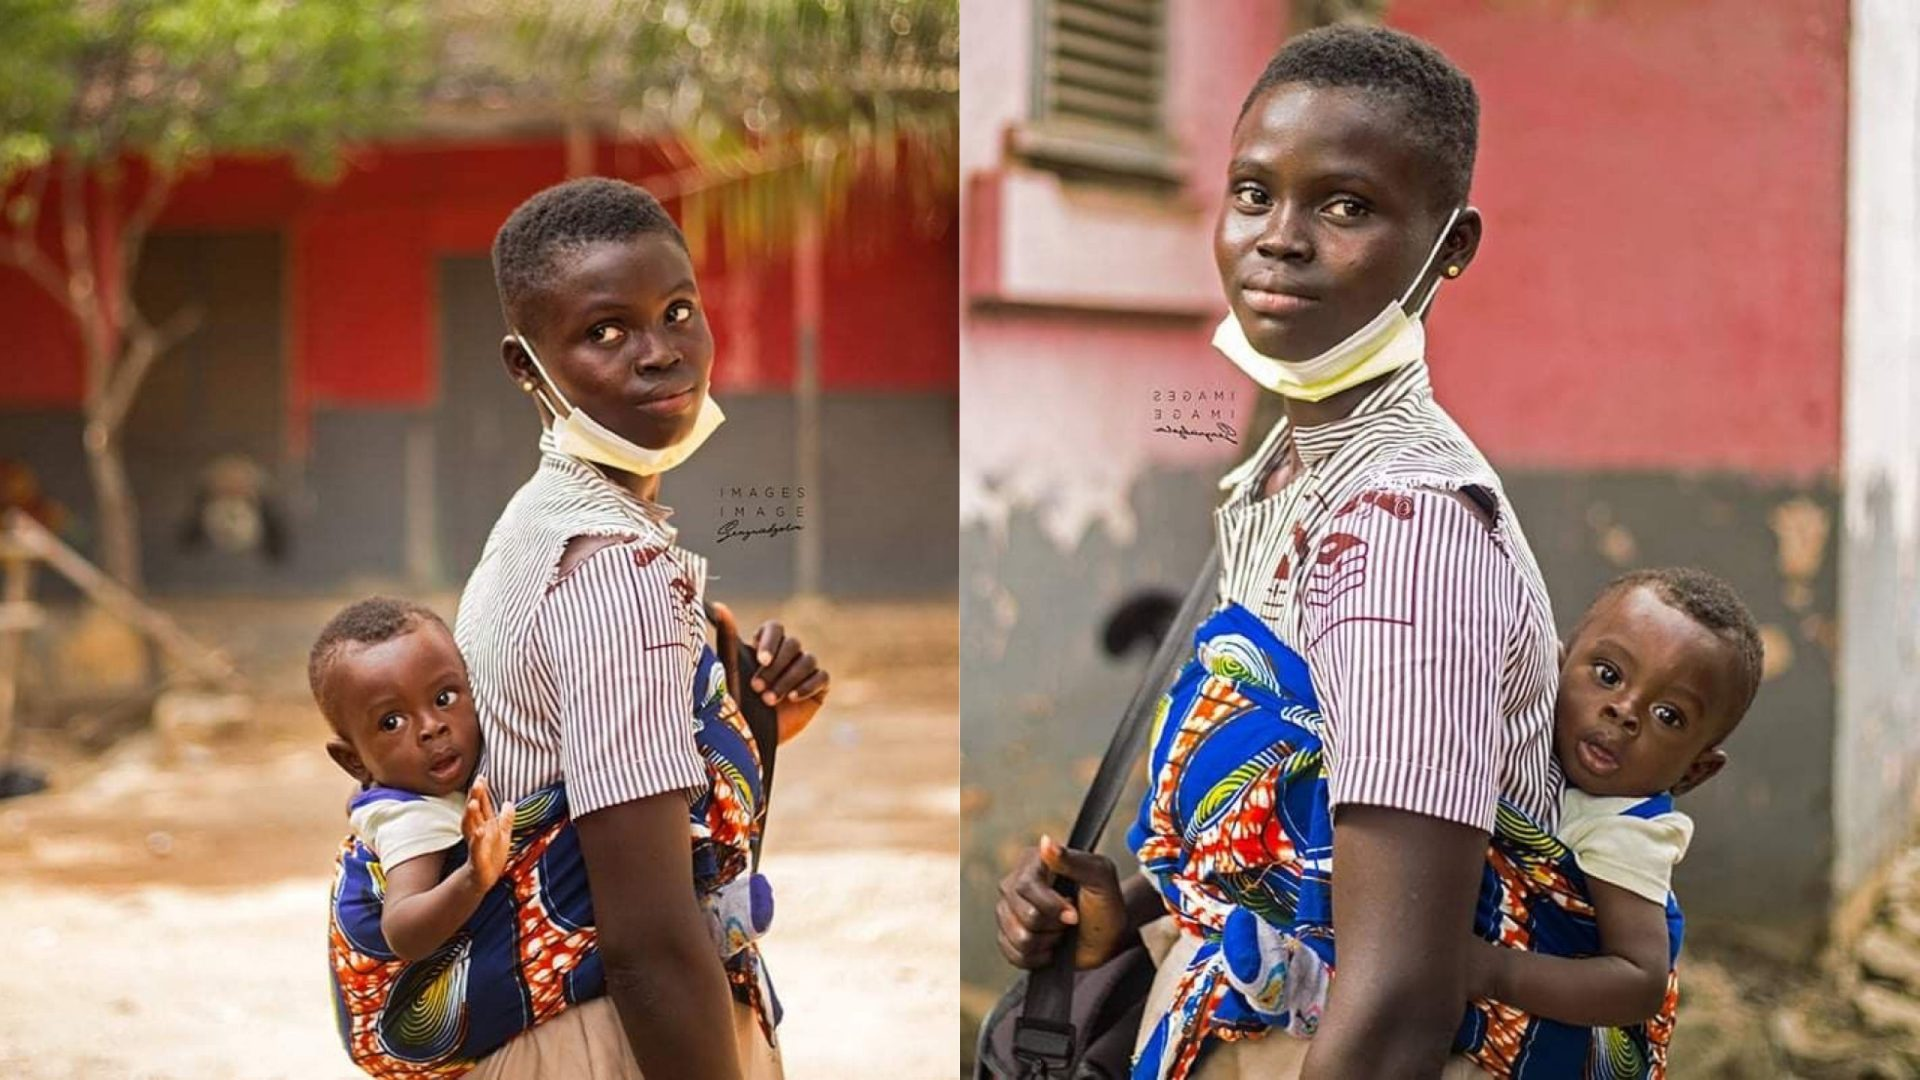 Rita Awuni: The touching story of a 17-year-old orphan who is schoolmates with her 10-month-old son